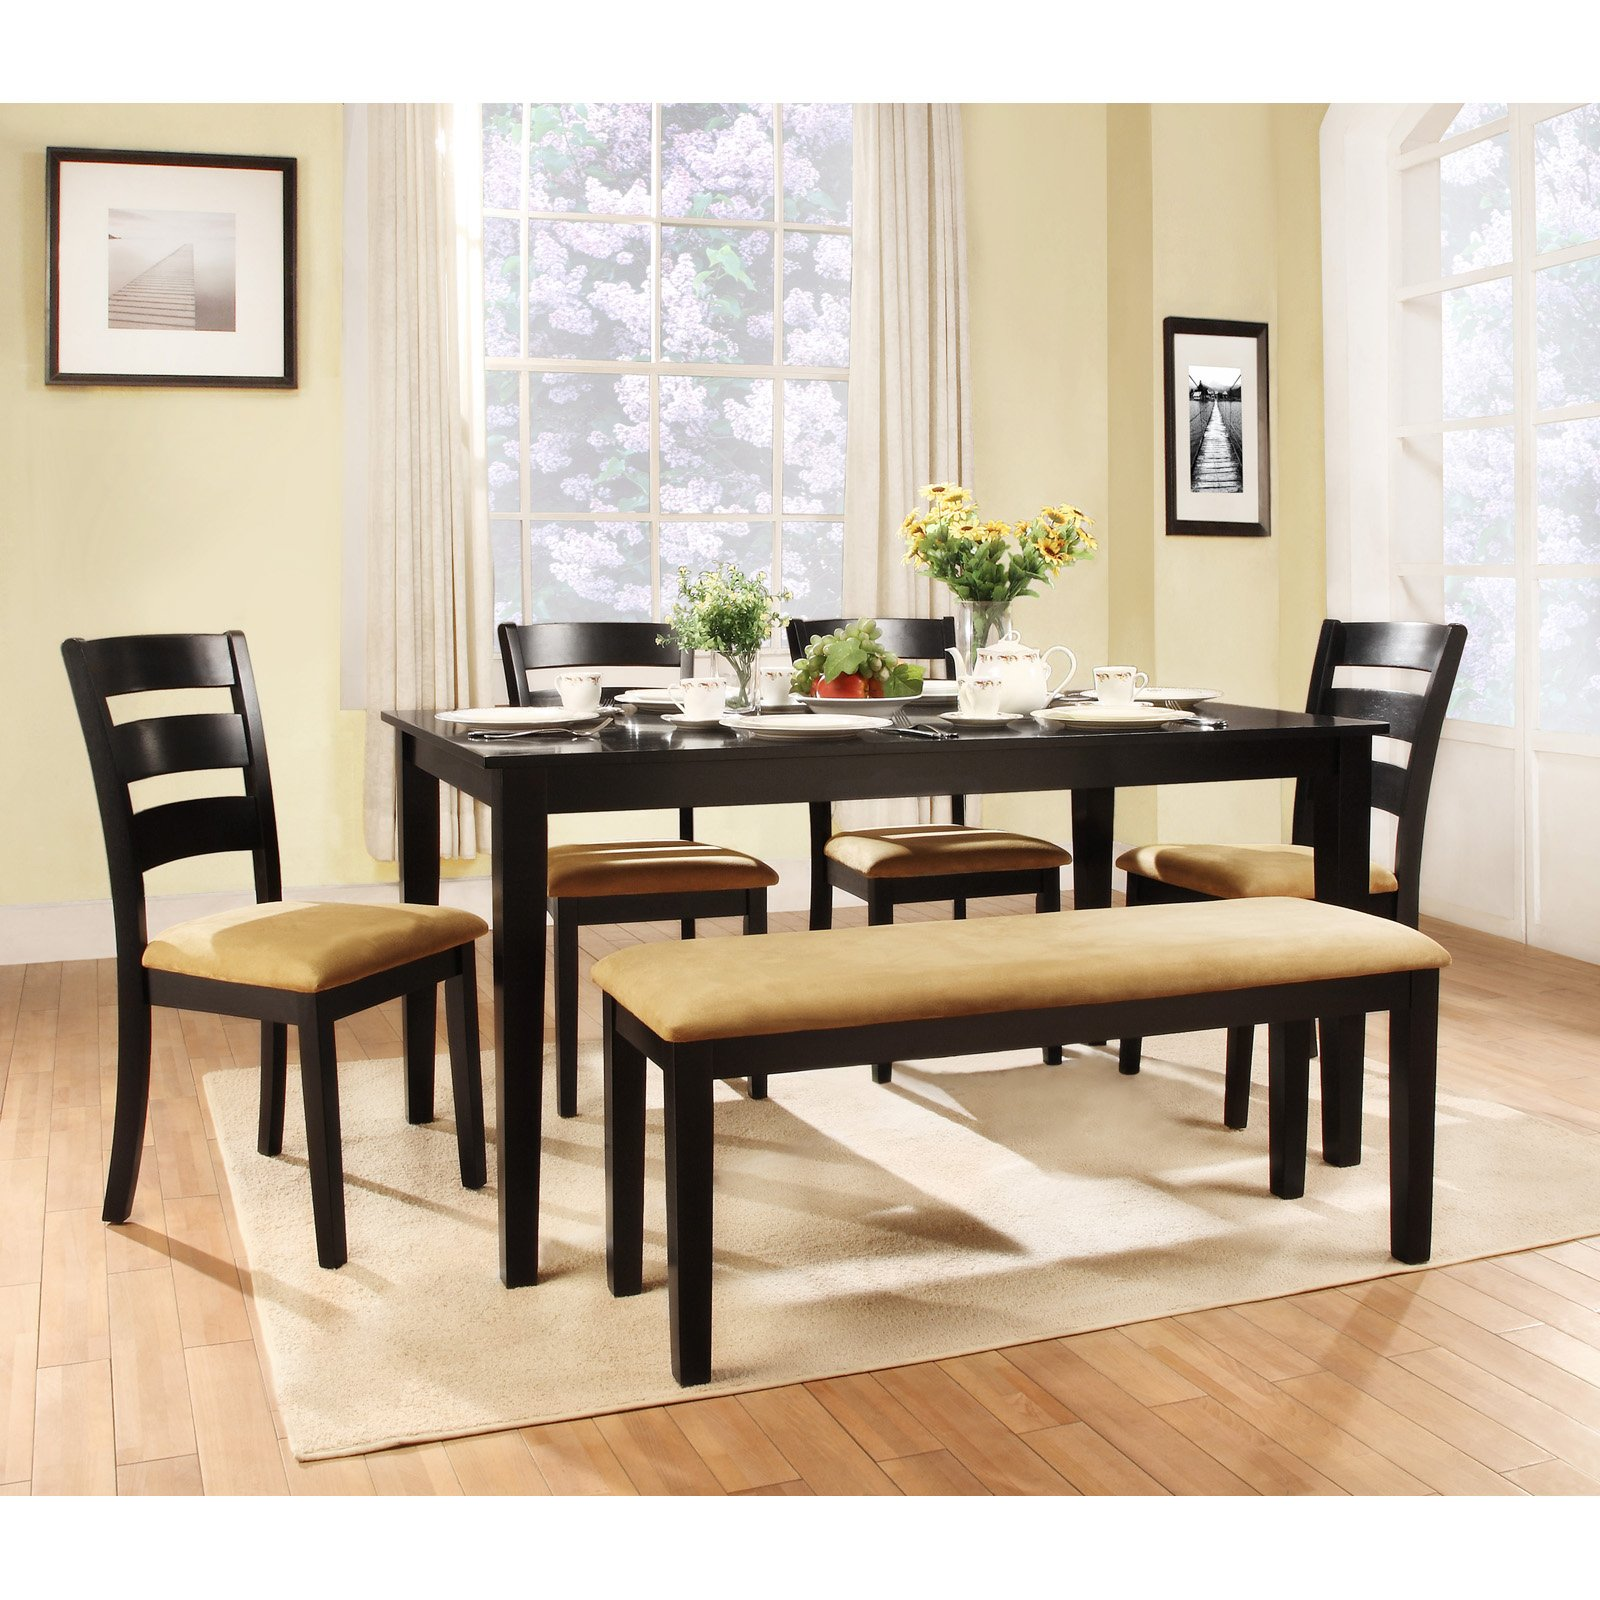 Modern bench style dining table set ideas homesfeed for Modern table and chairs